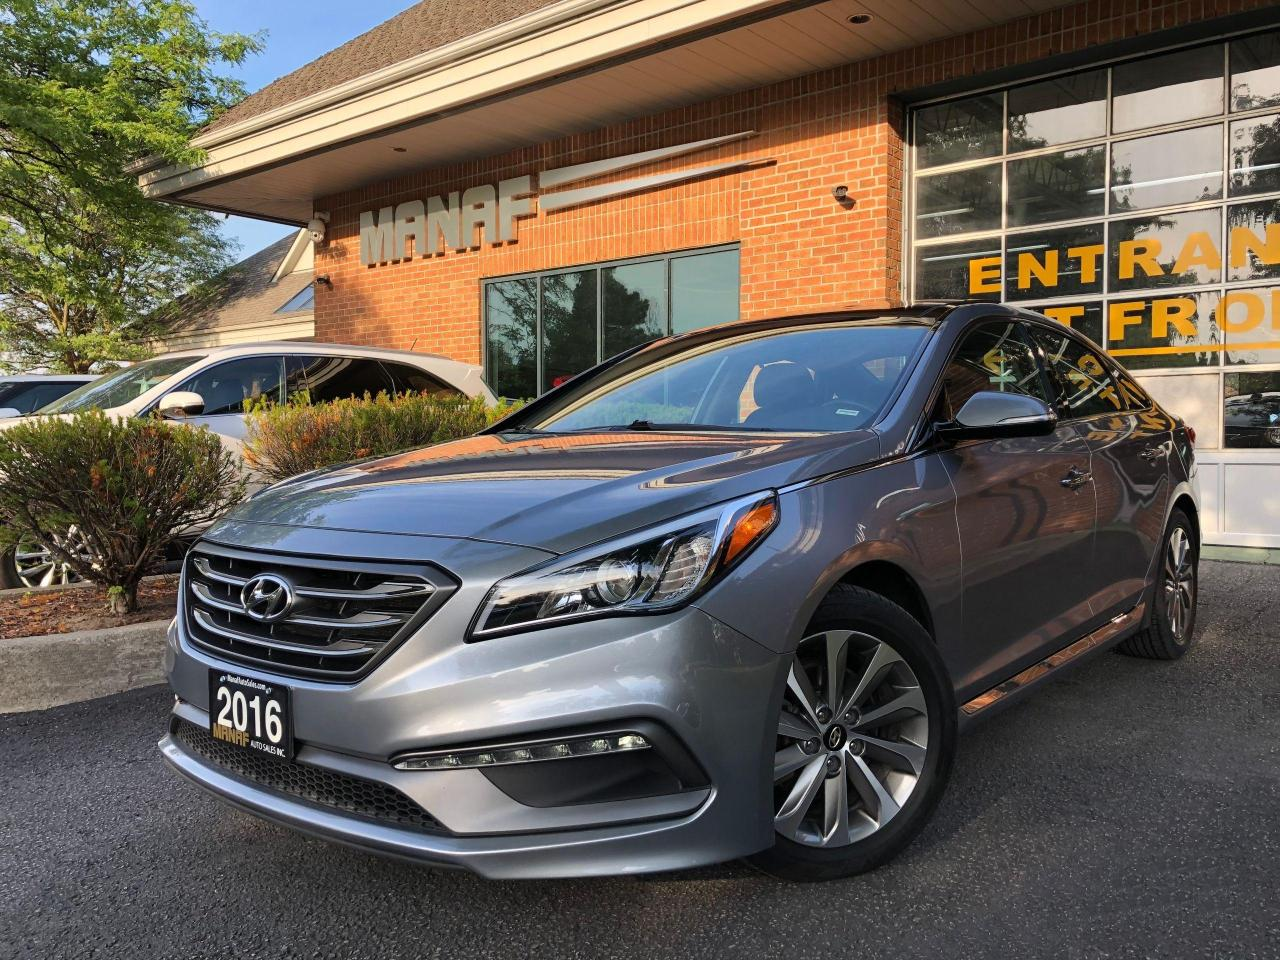 used 2016 hyundai sonata 2.4l sport tech navi panoramic sunroof r.cam cert for sale in concord, ontario carpages.ca